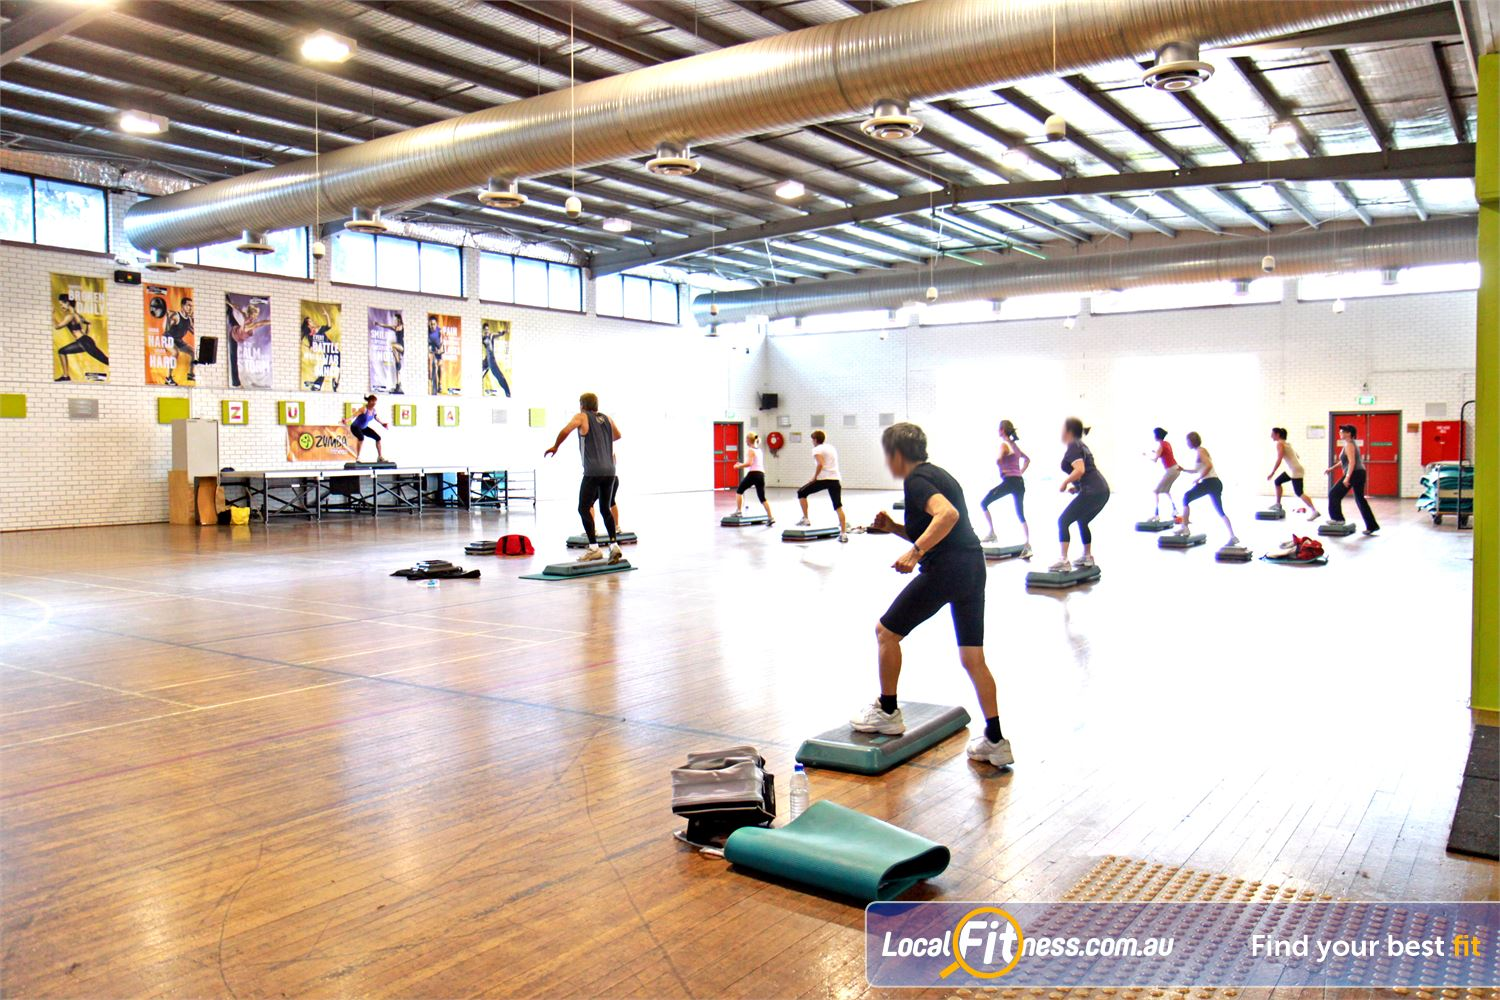 Ascot Vale Leisure Centre Near Moonee Ponds The Ascot Vale group fitness menu includes over 120 classes per week.